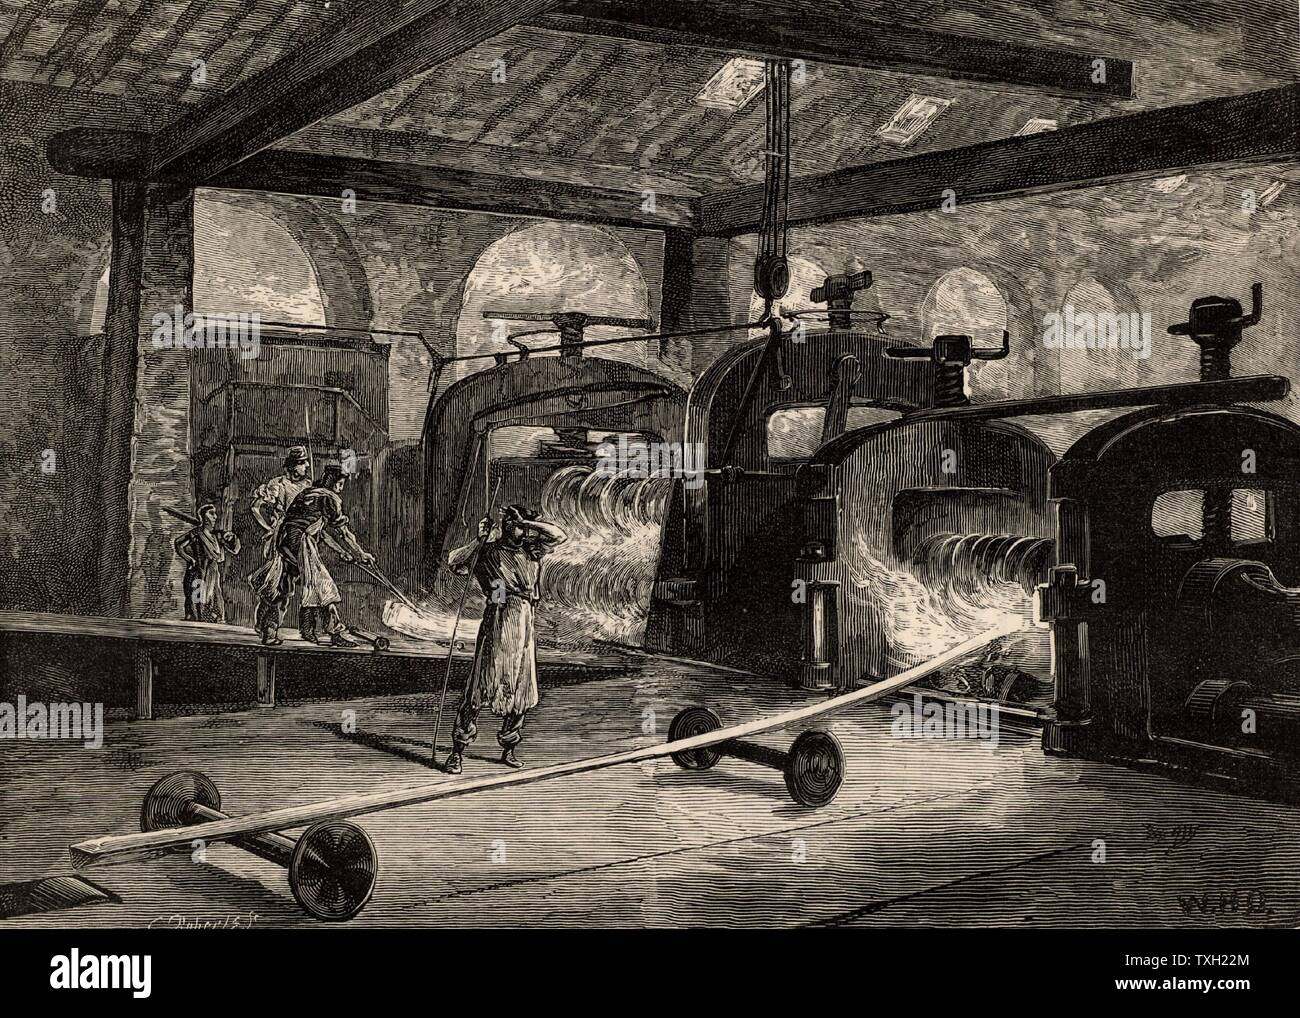 A battery of rolling mills producing steel rail.  Illustration  by the British artist William Heysman Overend (1851-1898).   Engraving from 'Great Industries of Great Britain' (London, c1880).  Engraving. - Stock Image